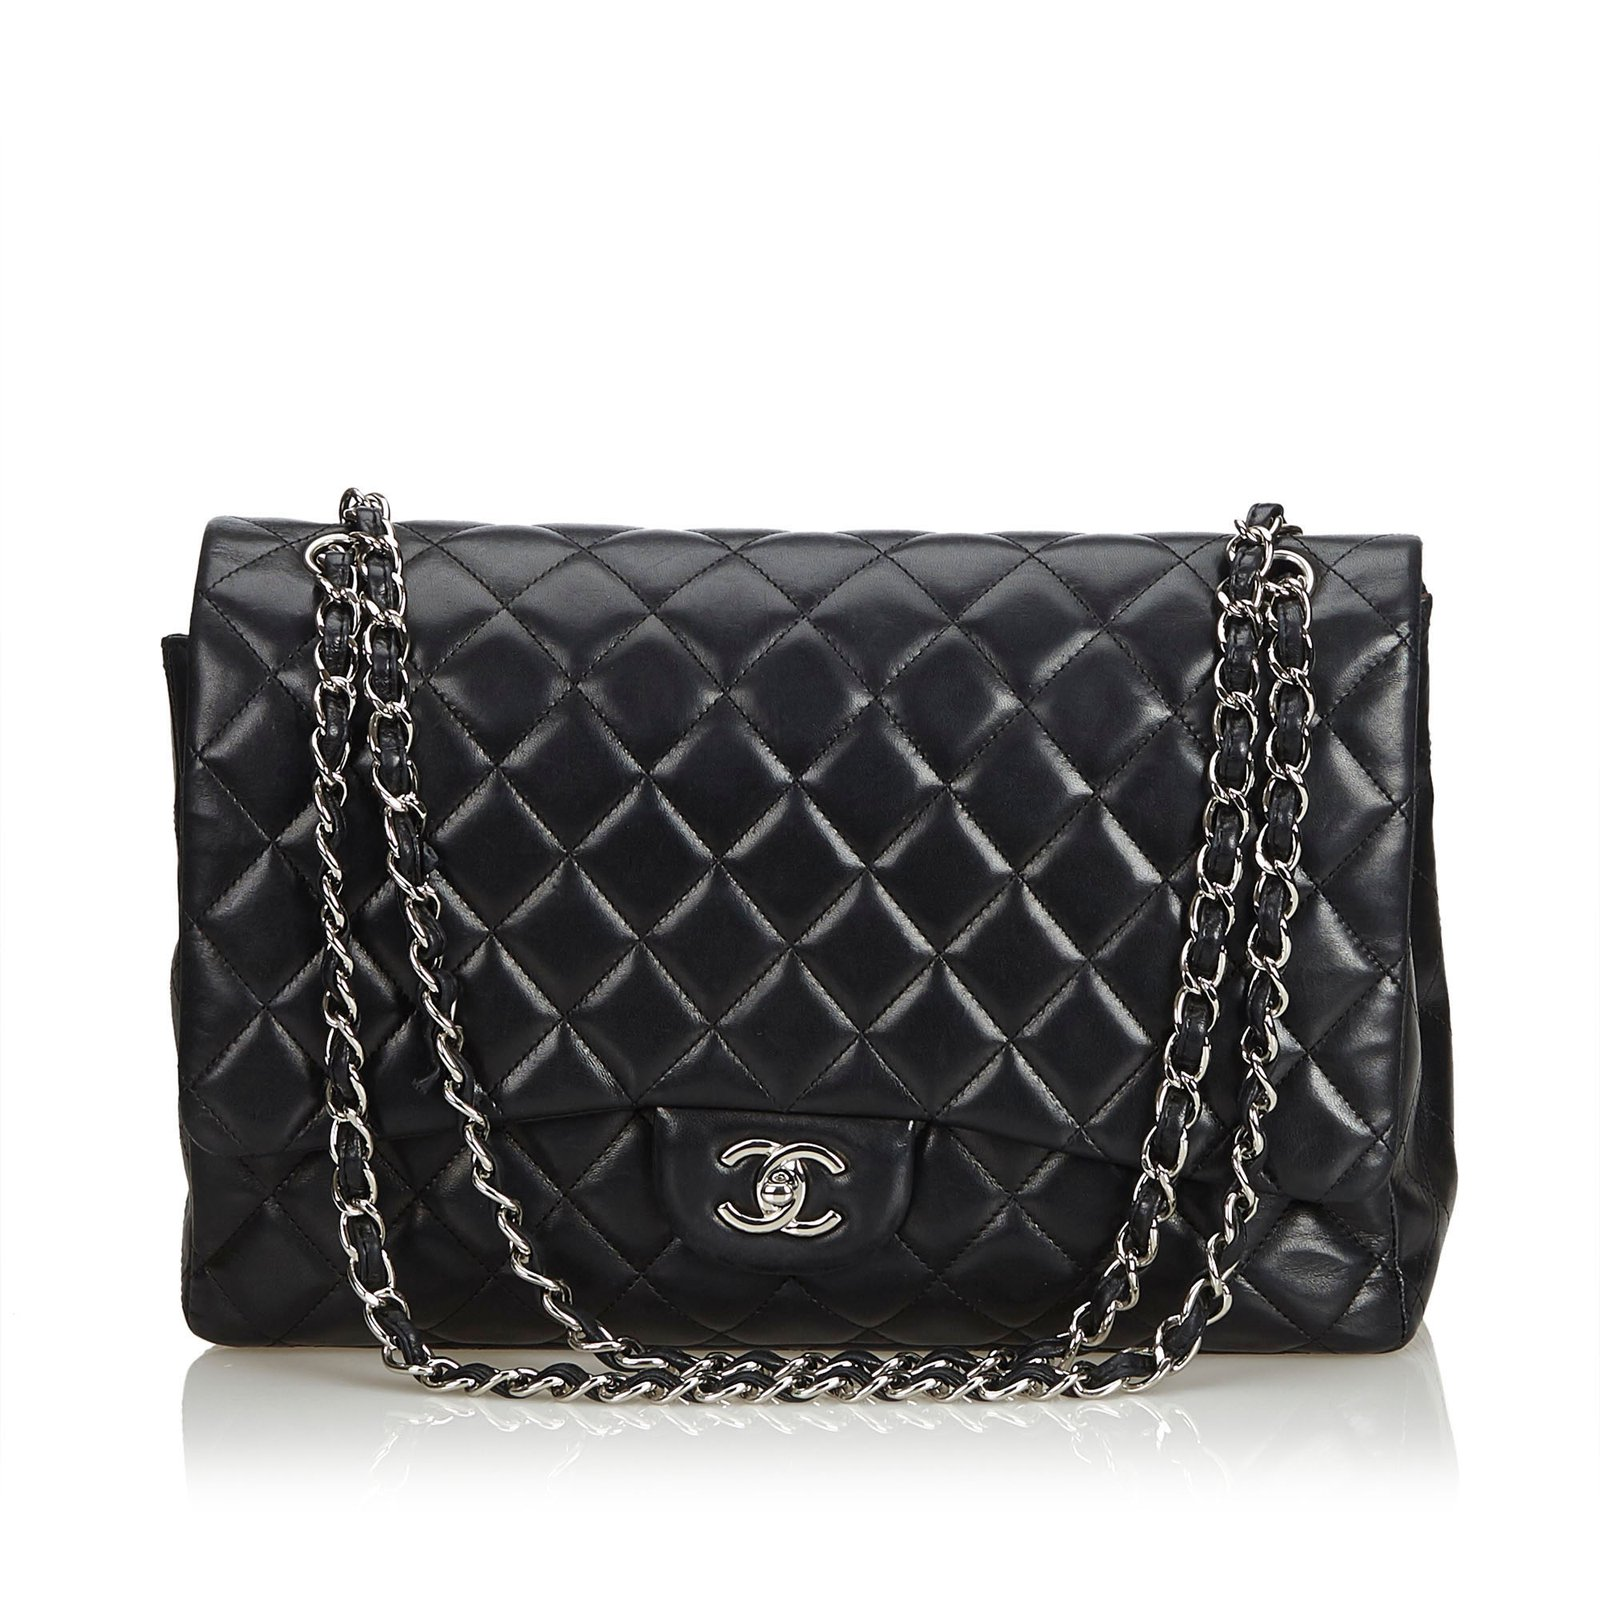 c43bd0a673dd13 Chanel Classic Maxi Lambskin Leather Single Flap Bag Handbags Leather Black  ref.104832